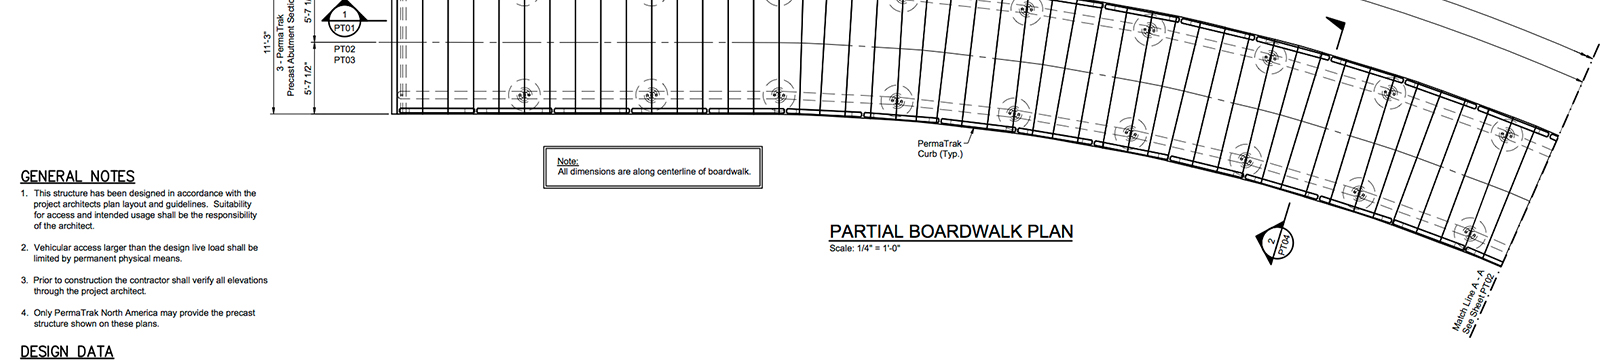 boardwalk_pedestrian_bridge_design.jpg